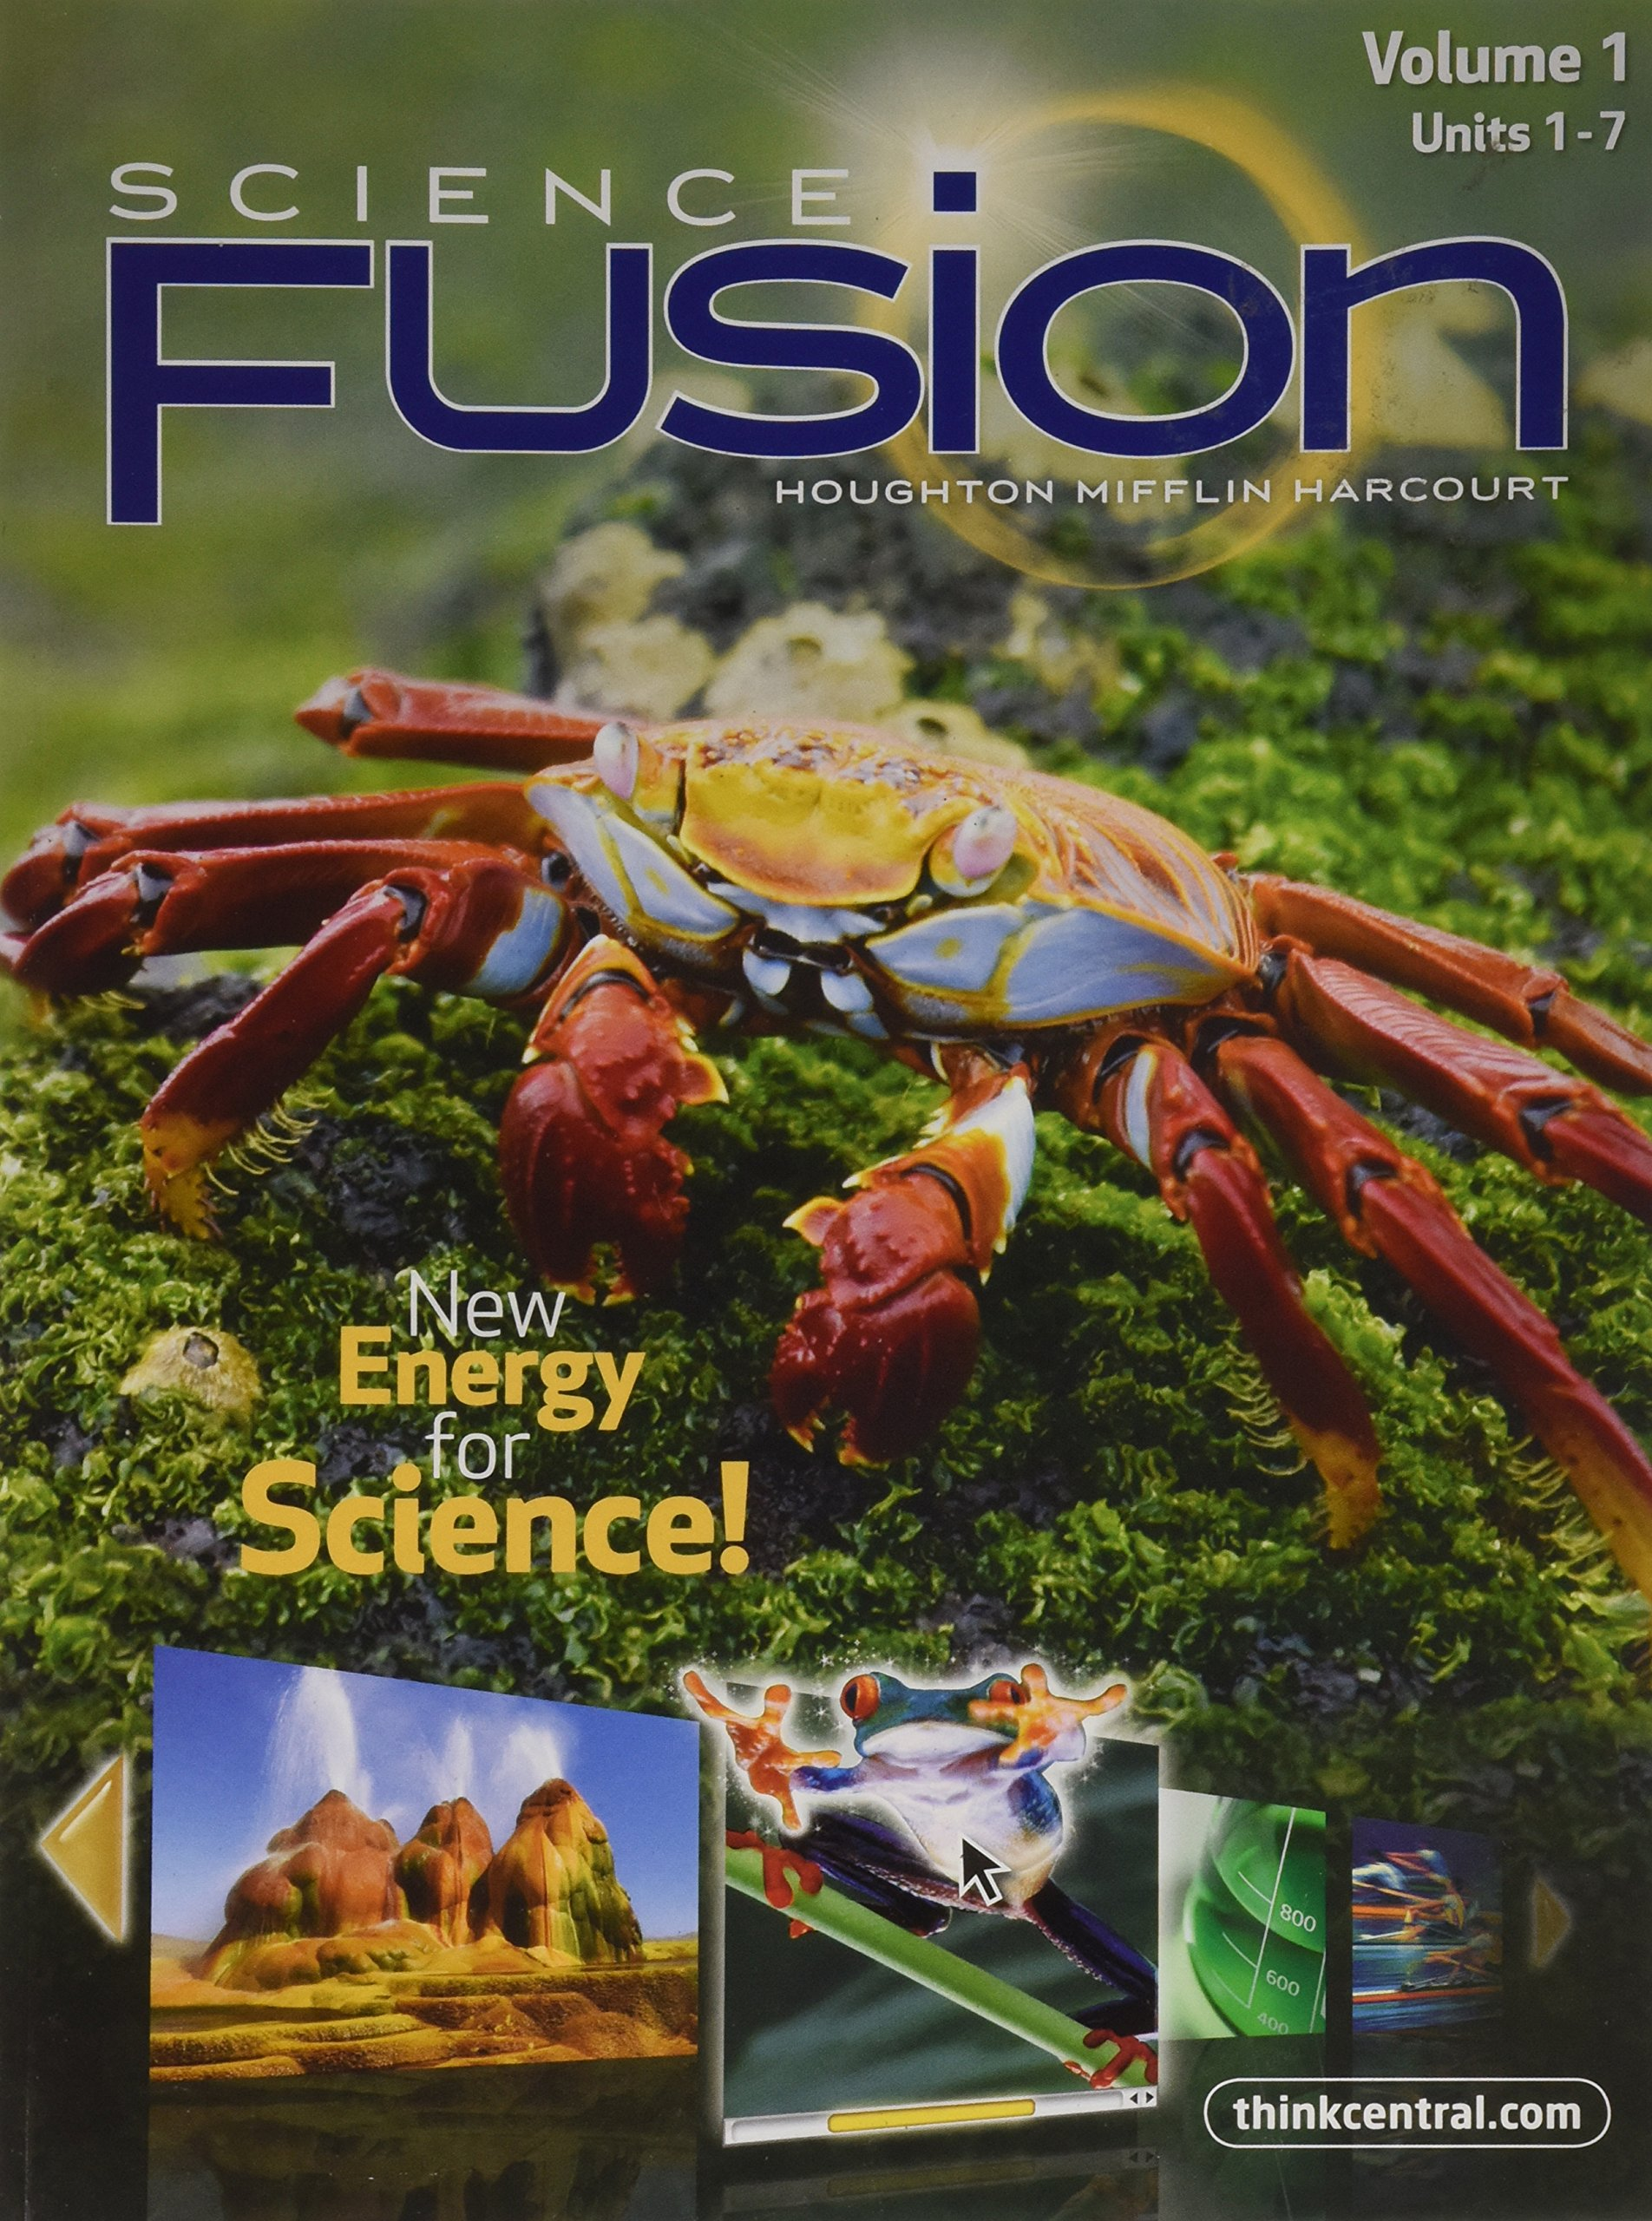 Science fusion volume 1 units 1 7 gr 5 houghton mifflin harcourt science fusion volume 1 units 1 7 gr 5 houghton mifflin harcourt 9780547719368 amazon books ccuart